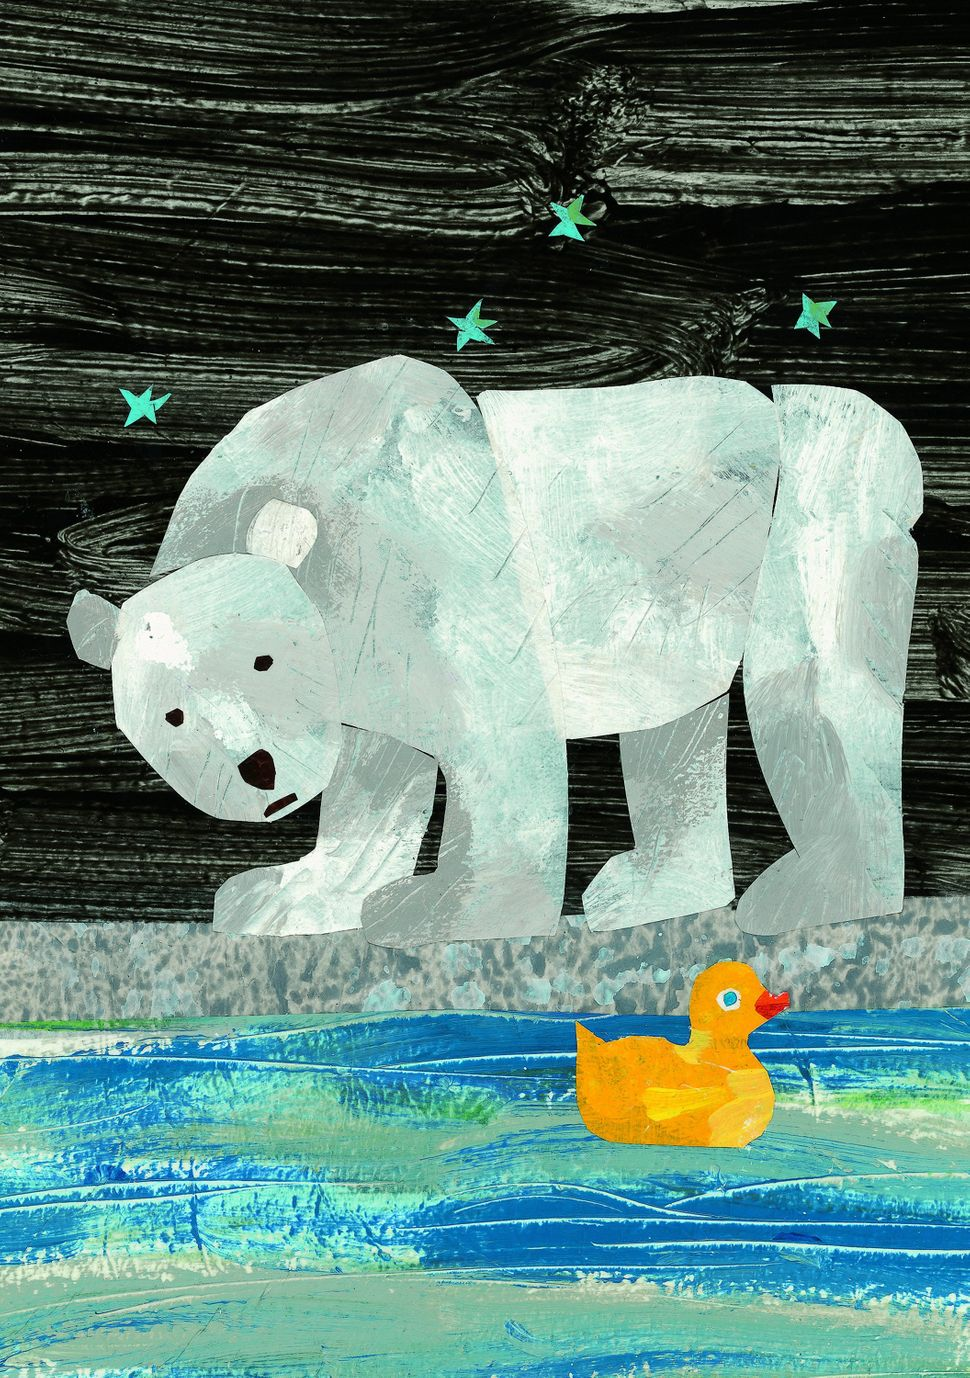 Illustration from <i>10 Little Rubber Ducks</i>&nbsp;&copy; 1990 by Eric Carle.